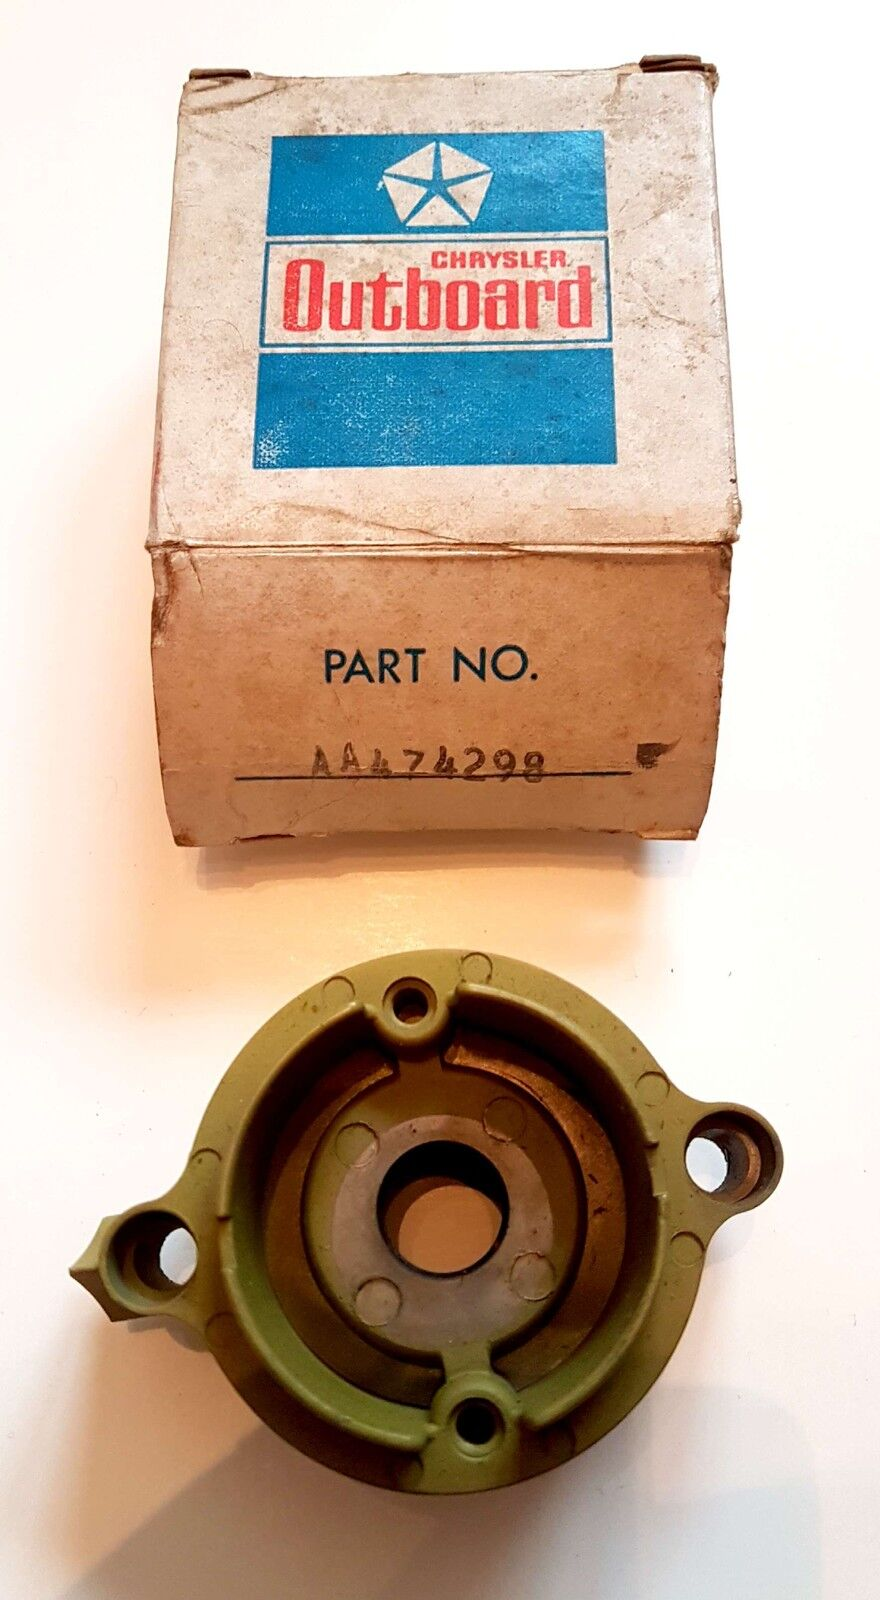 F2A474298 Prop. Shaft Bearing Cage für Chrysler / Force 6 - 12 + 55 HP, 1976 -83